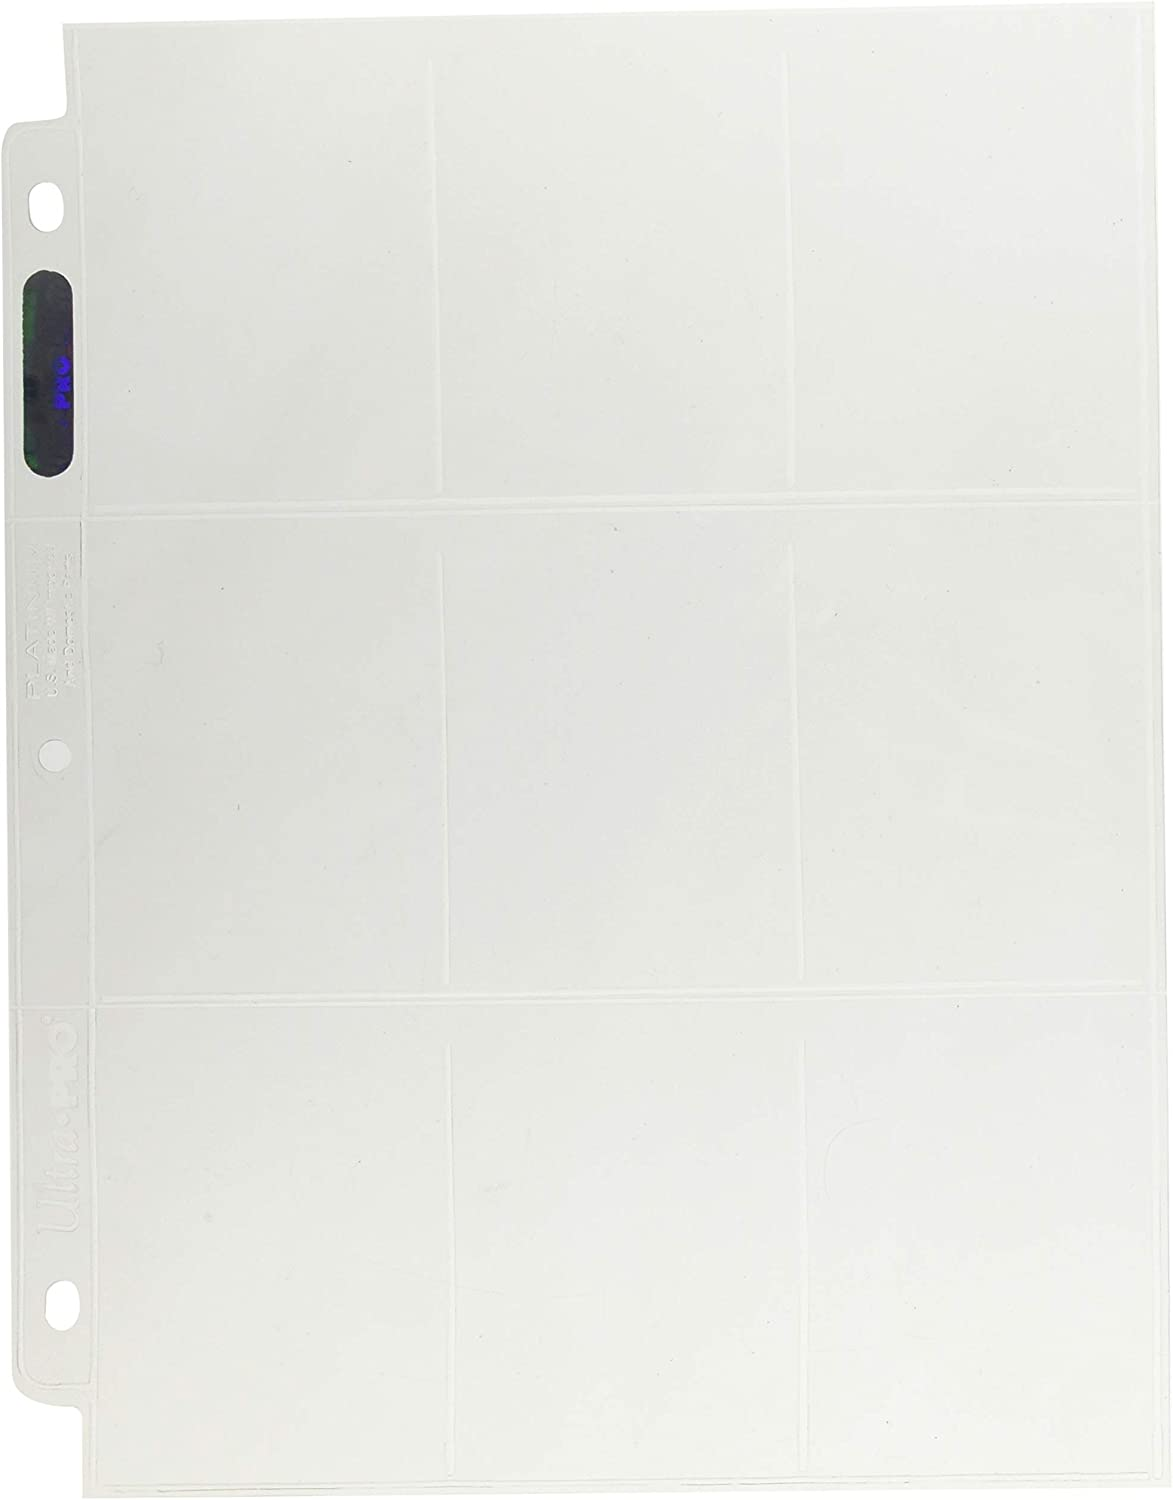 Ultra Pro 9-Pocket Trading Card Pages - Platinum 100 count Box, Clear.